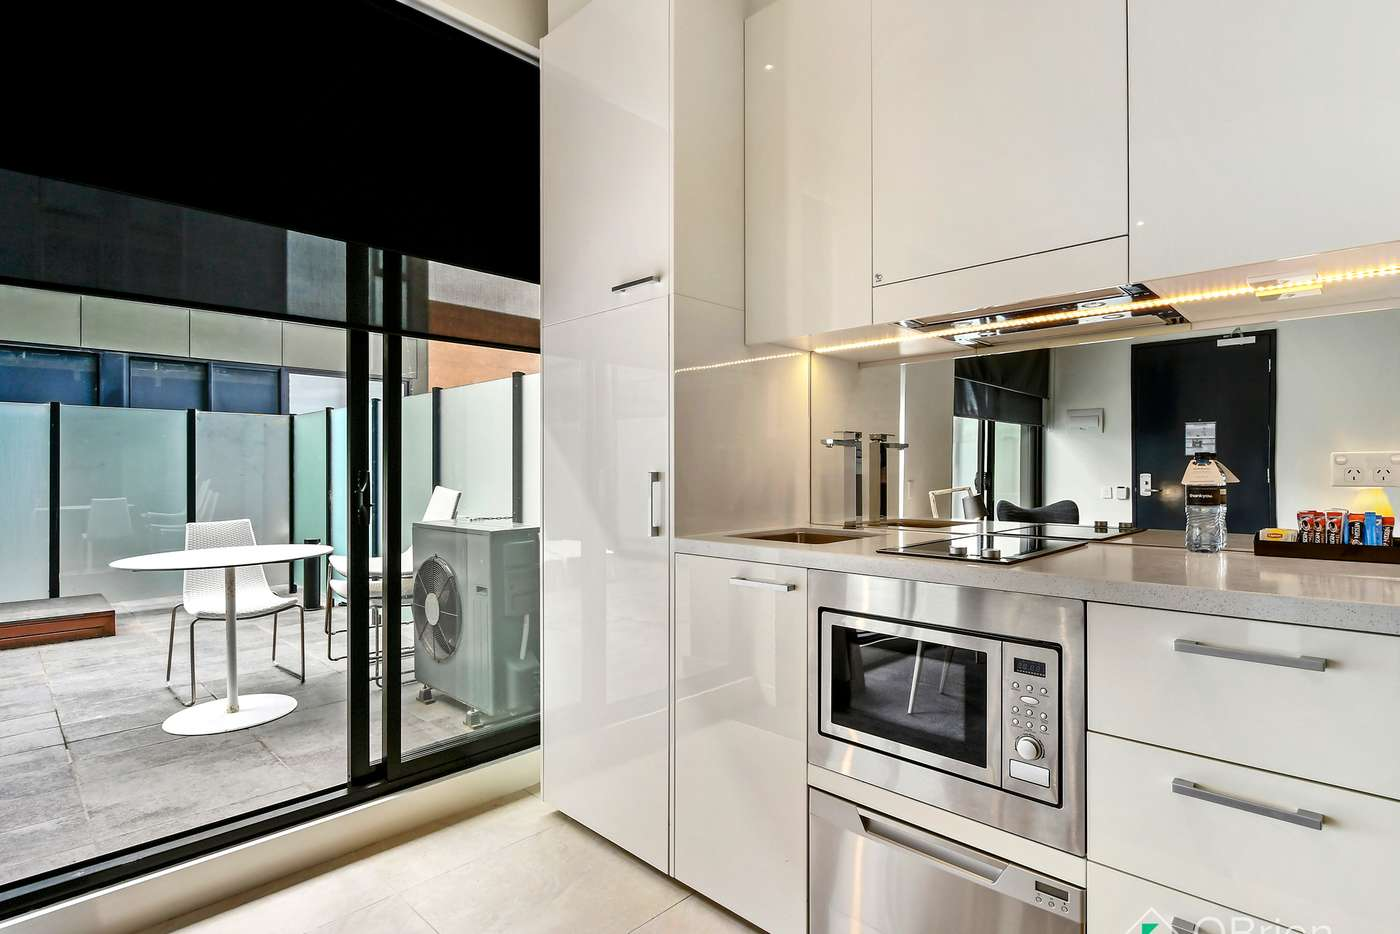 Main view of Homely apartment listing, 109/435 Nepean Highway, Frankston VIC 3199